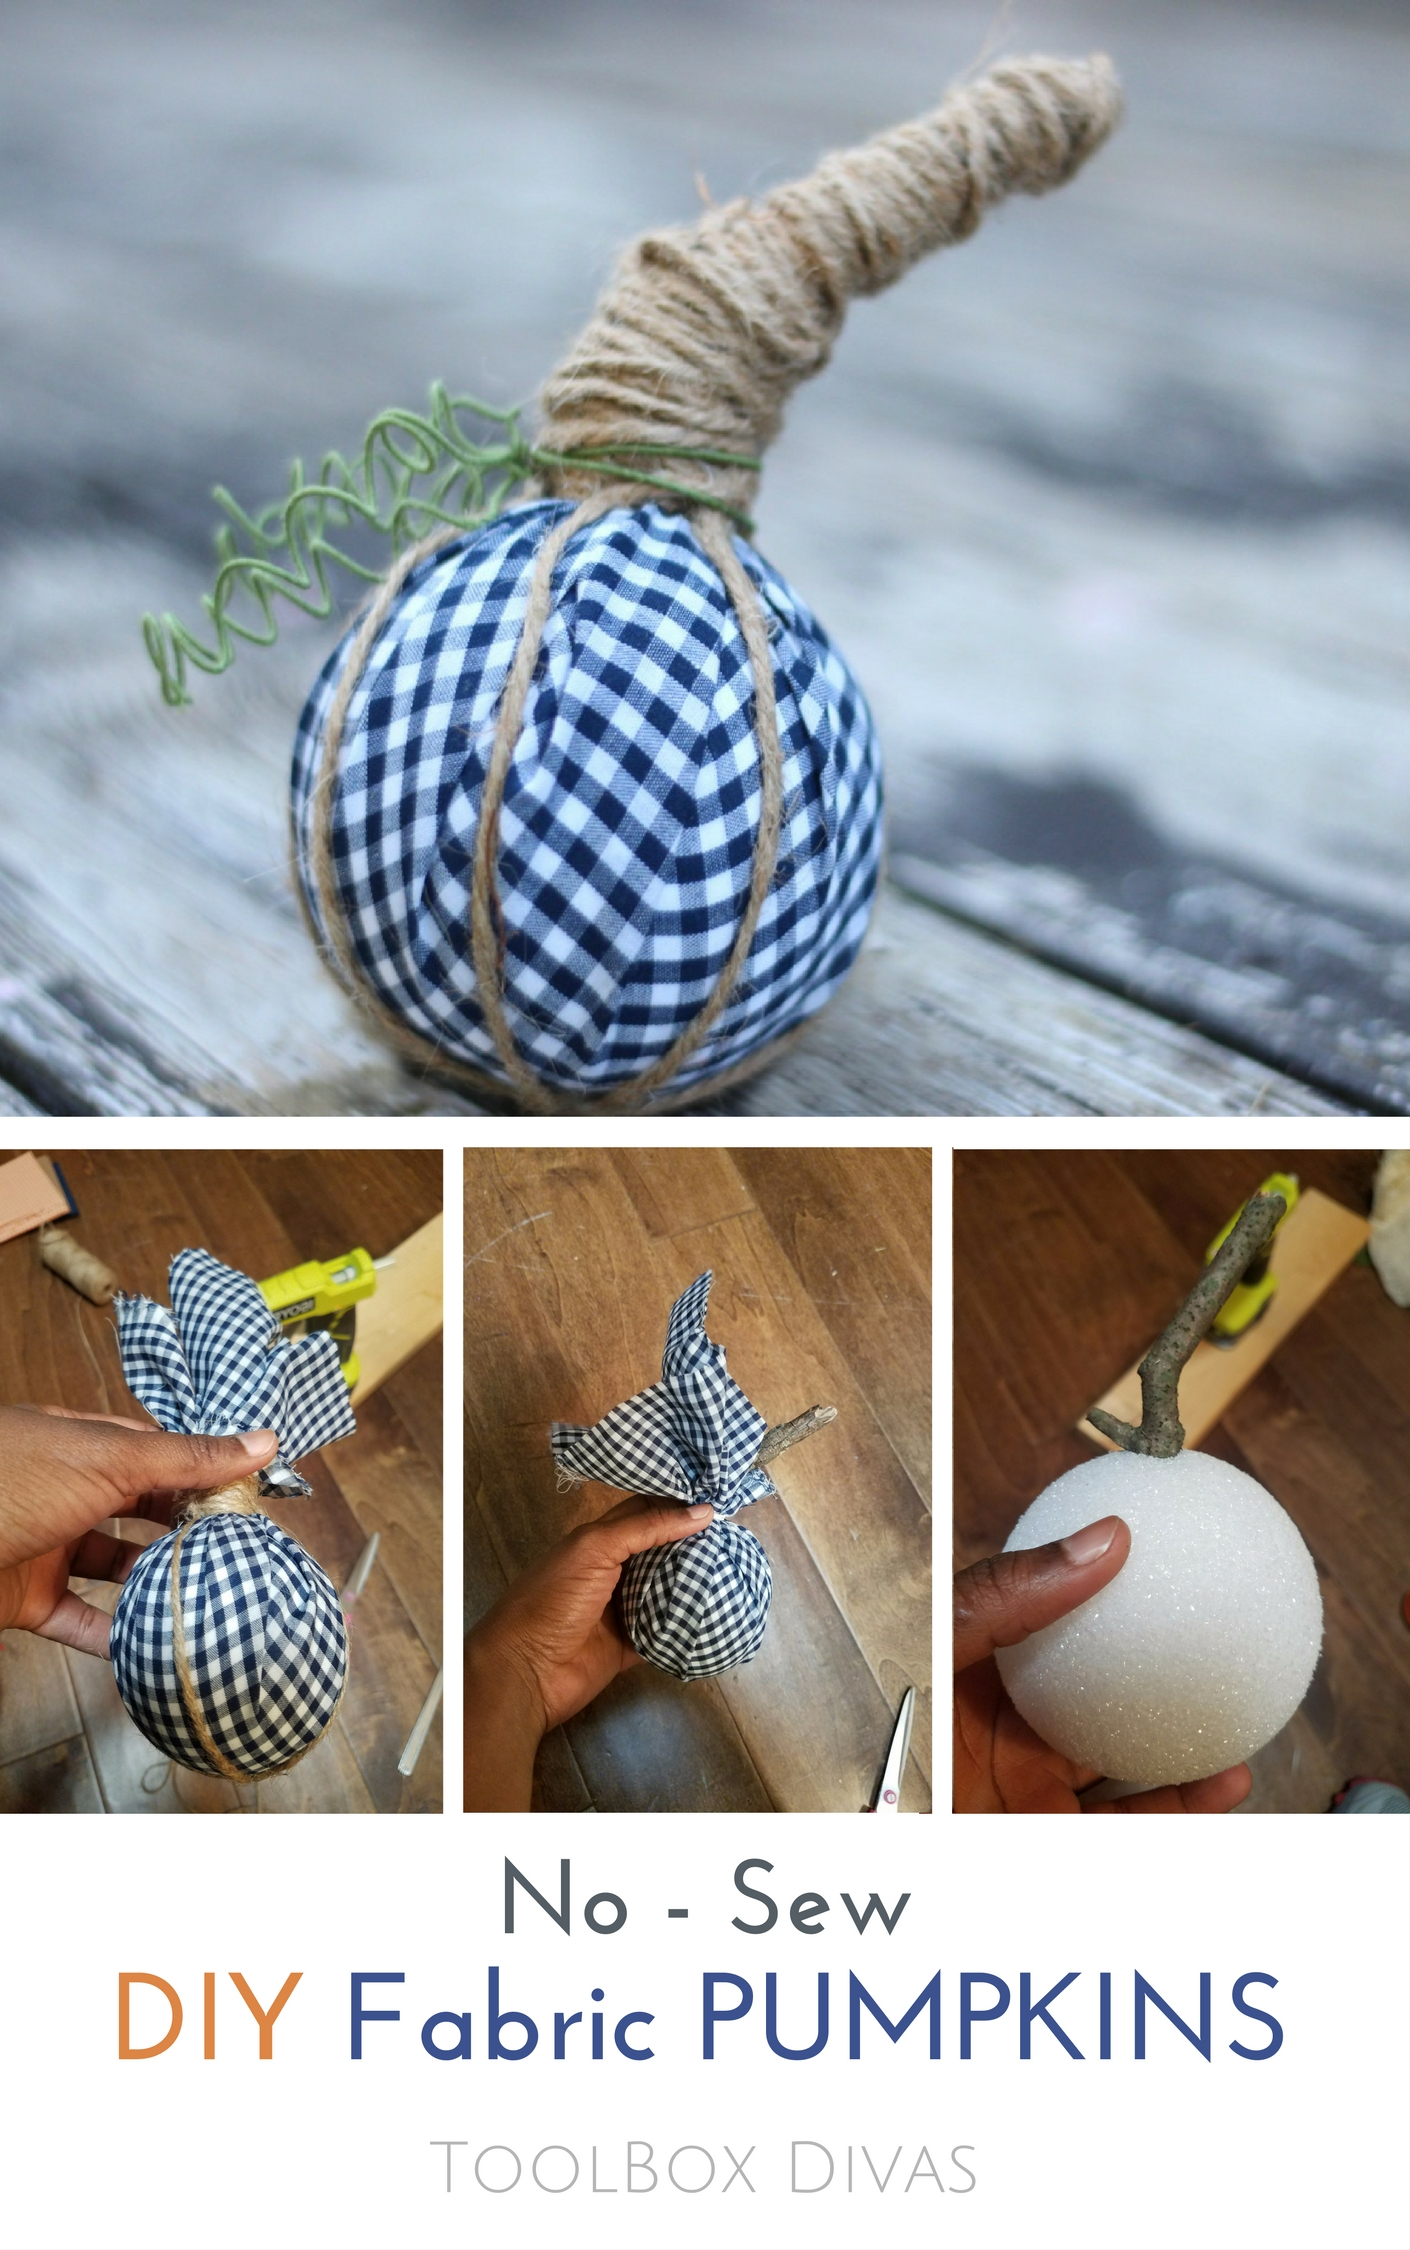 No Sew Fabric pumpkins.  Decorate this fall with these no-sew solutions.  Perfect quick weekend craft. @ToolboxDivas #ToolboxDivas #Falldecor #LetsGetCrafty